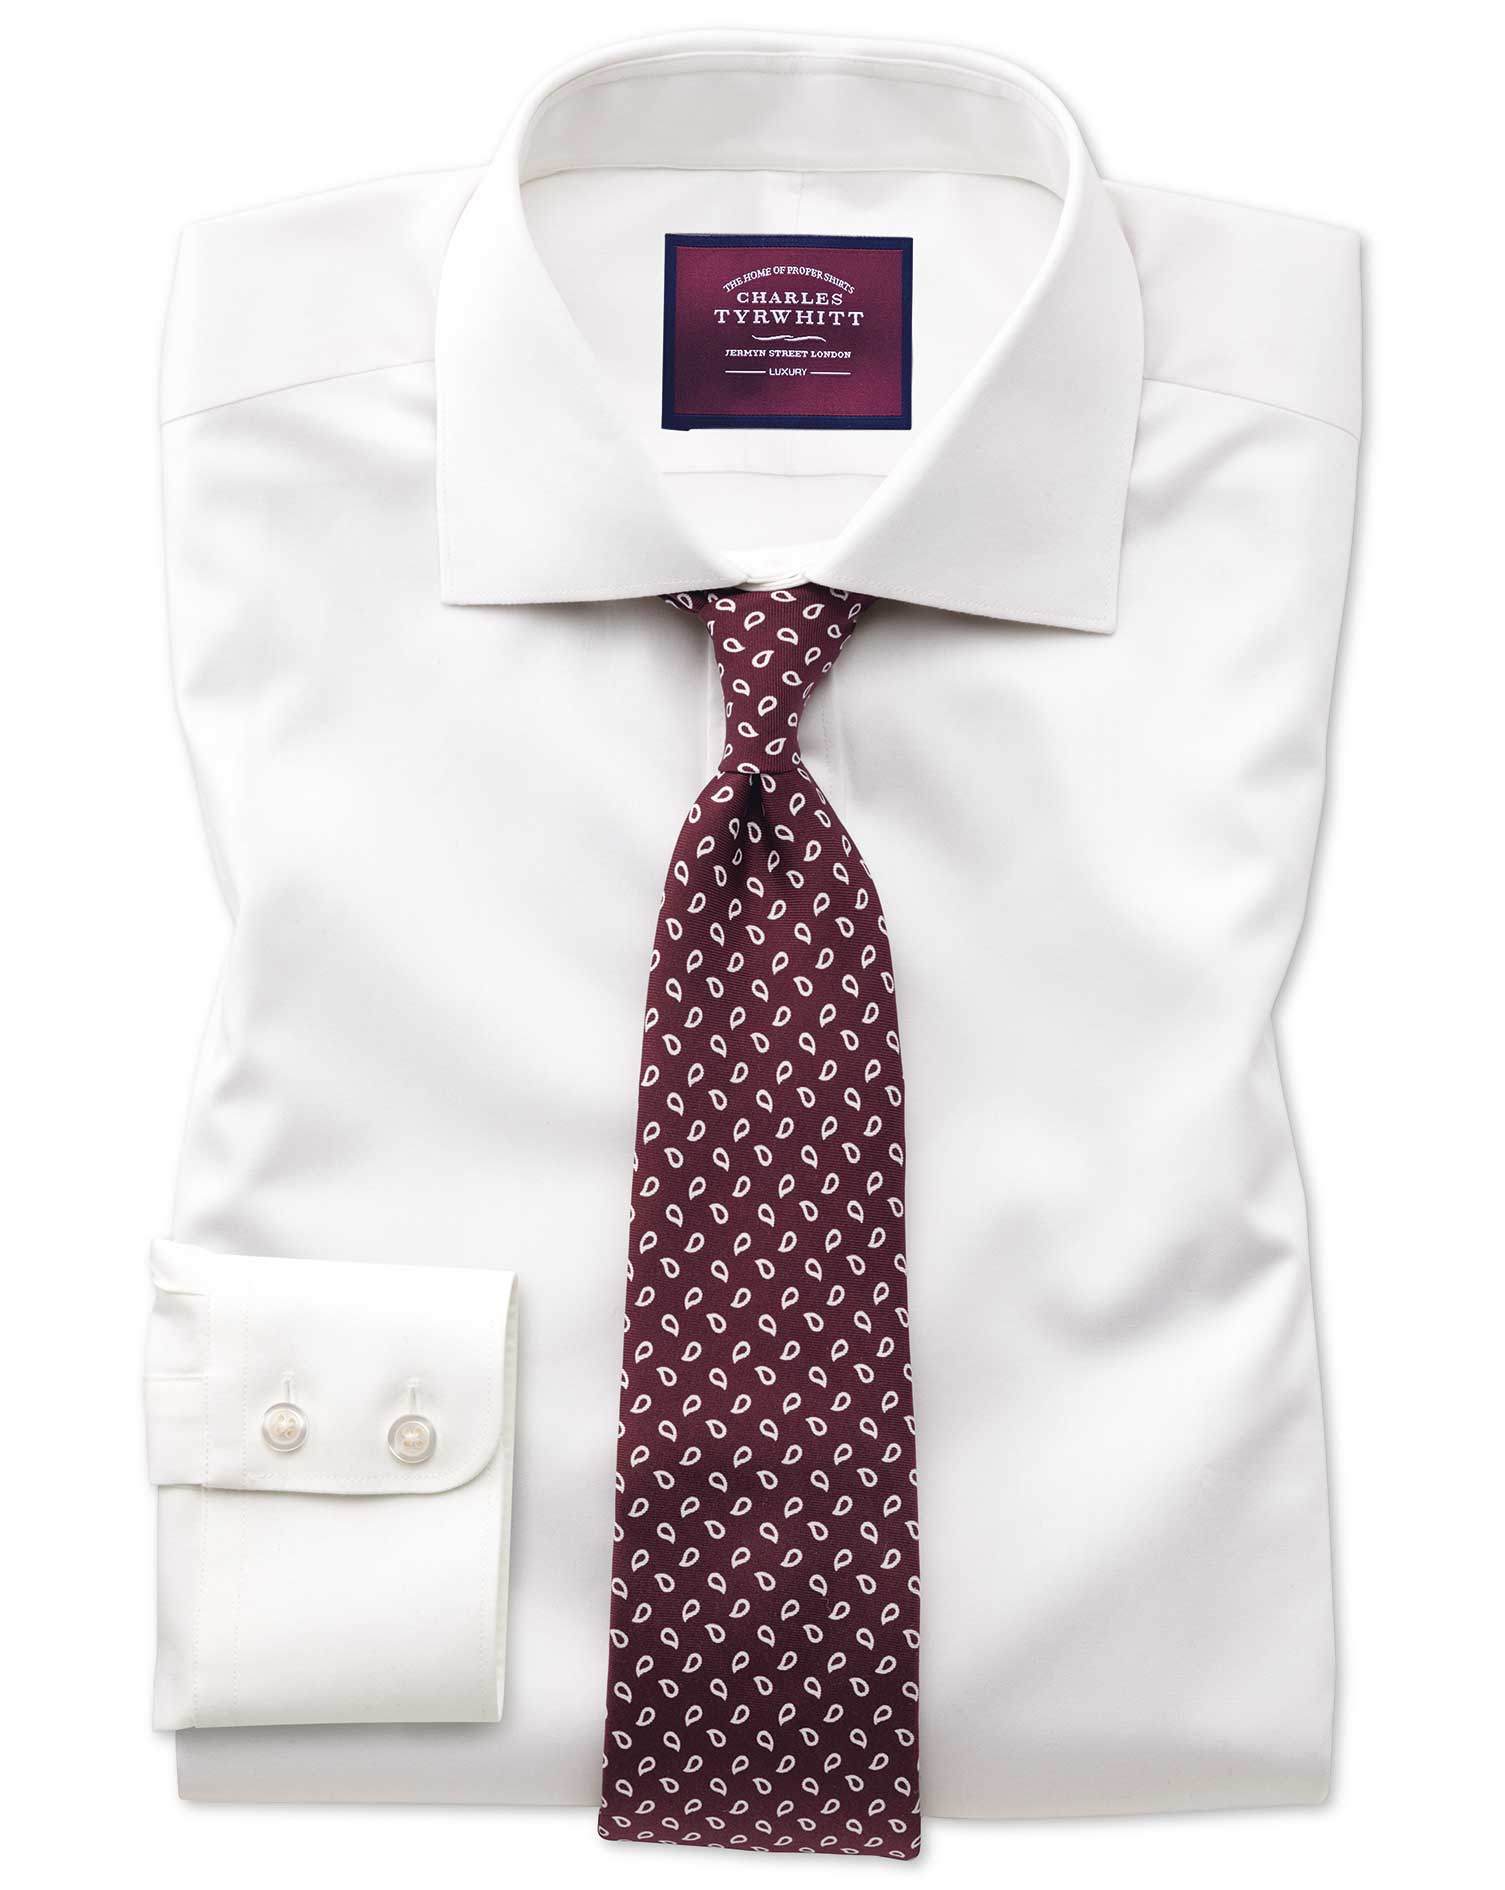 Classic Fit Semi-Cutaway Luxury Cotton Silk Off-White Formal Shirt Single Cuff Size 16/34 by Charles